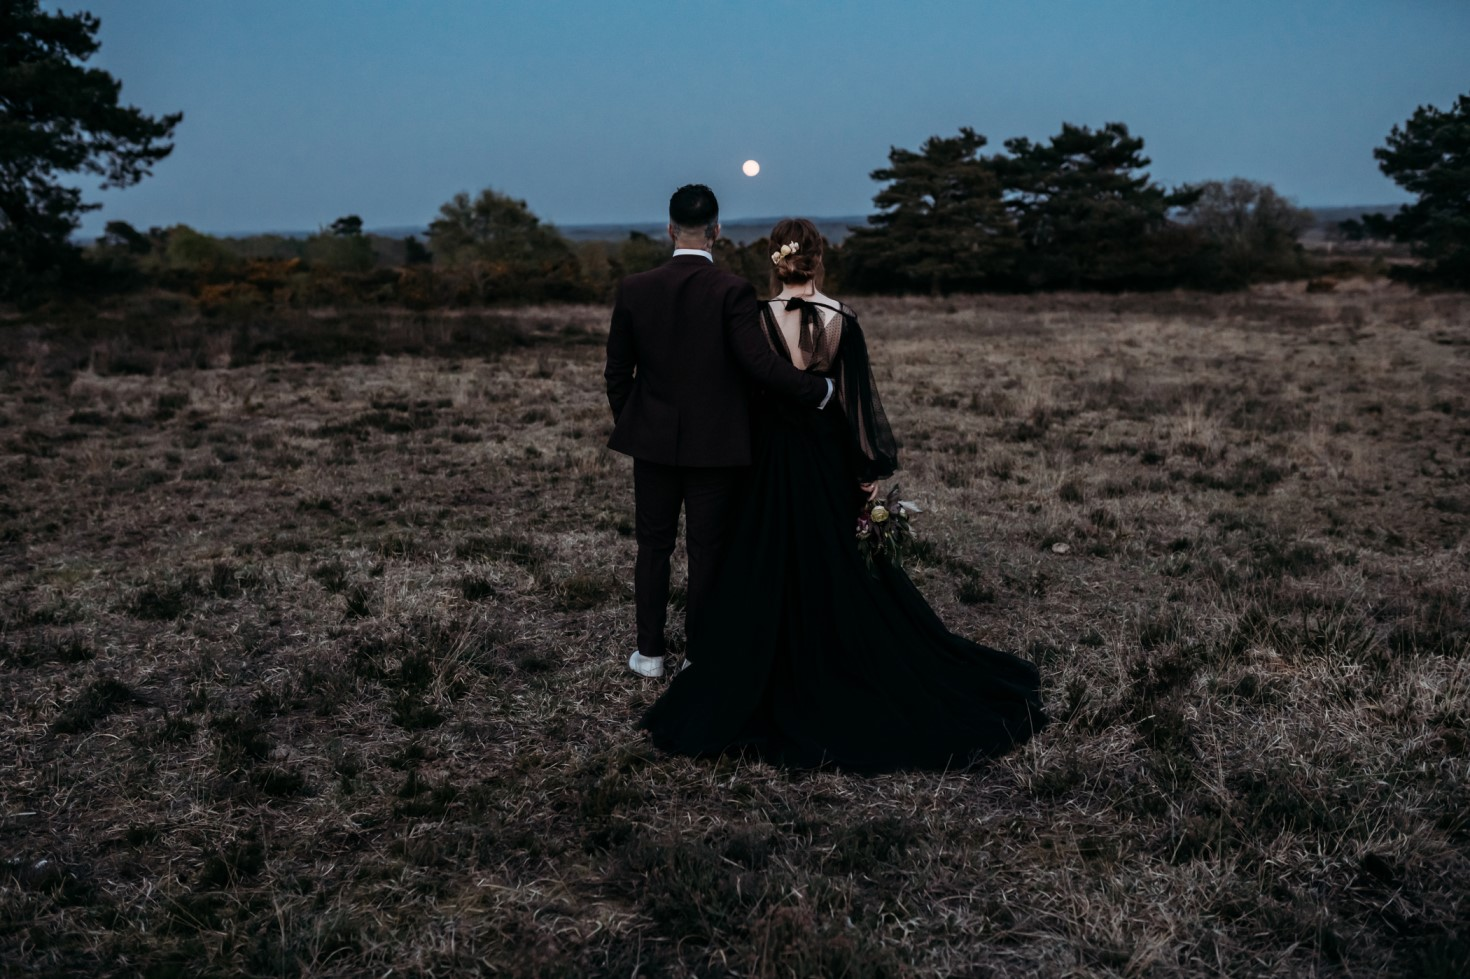 Finn And The Fox Photography-Moody Elopement Wedding- Gothic wedding - Black wedding dress - Sunset wedding picture - alternative wedding picture